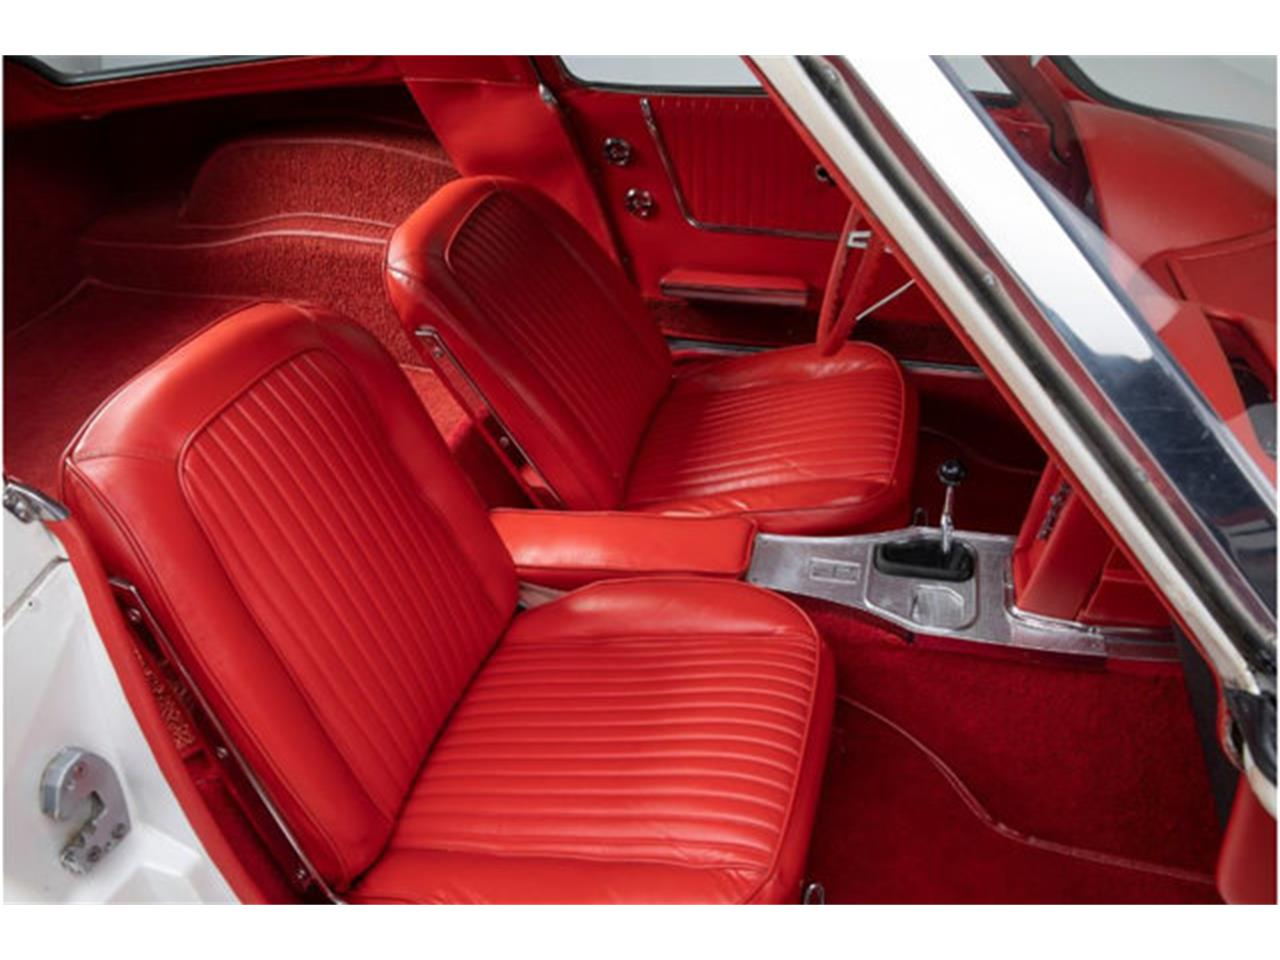 Large Picture of 1963 Chevrolet Corvette located in Clifton Park New York - $139,999.00 - QOXV